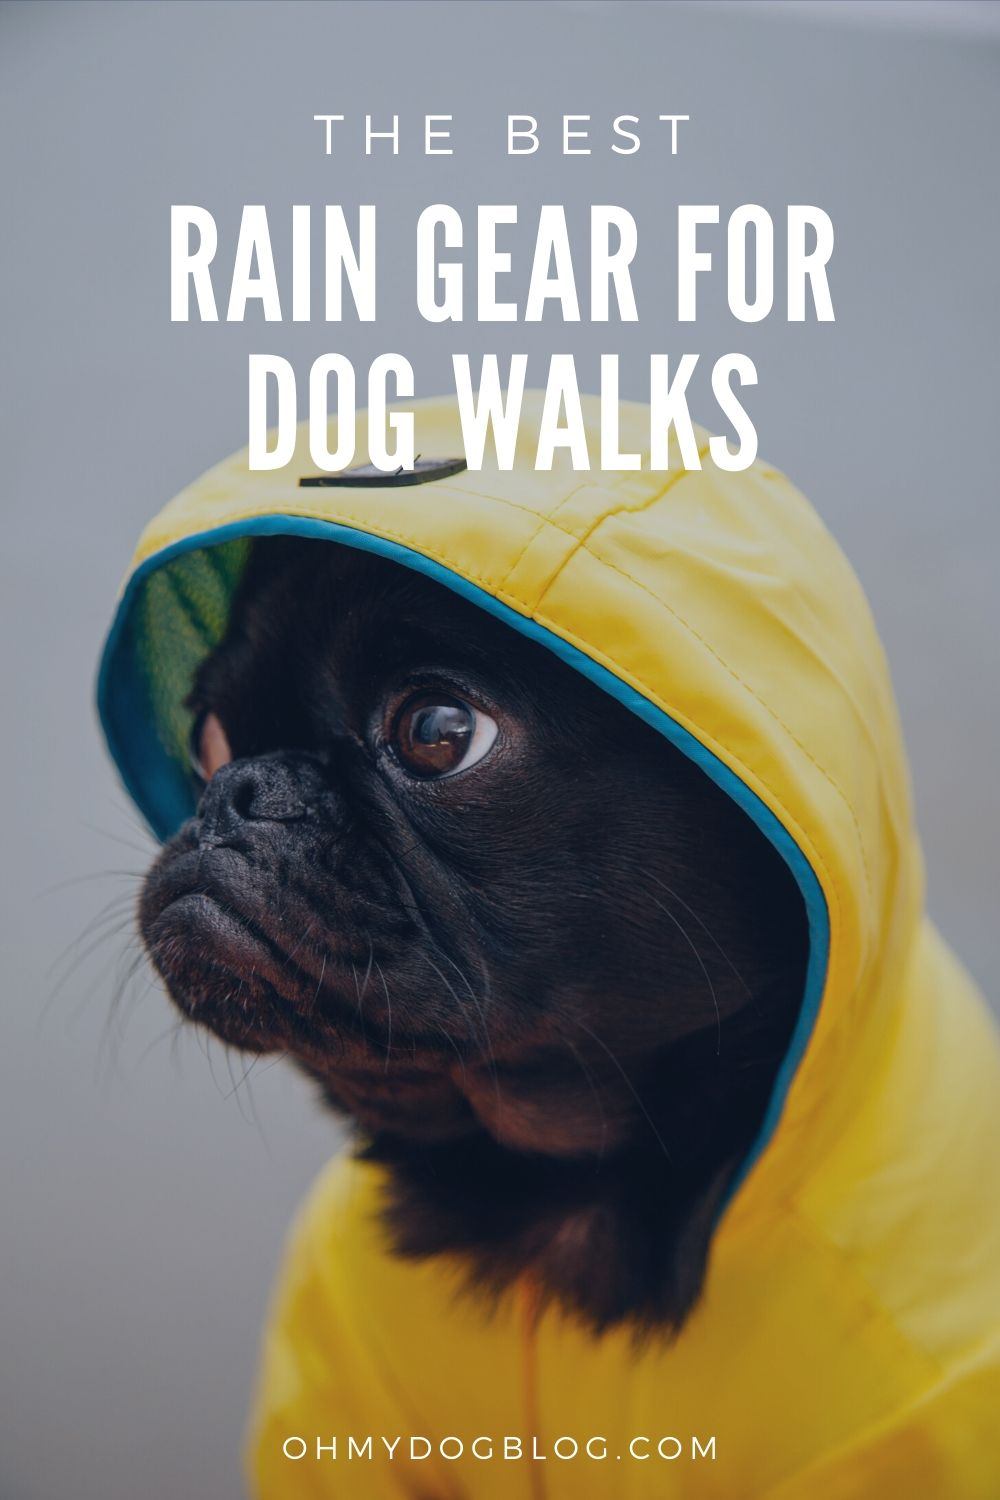 The Best Rain Gear for Dog Walks: Is there anything cuter than a pug in a yellow rain coat?